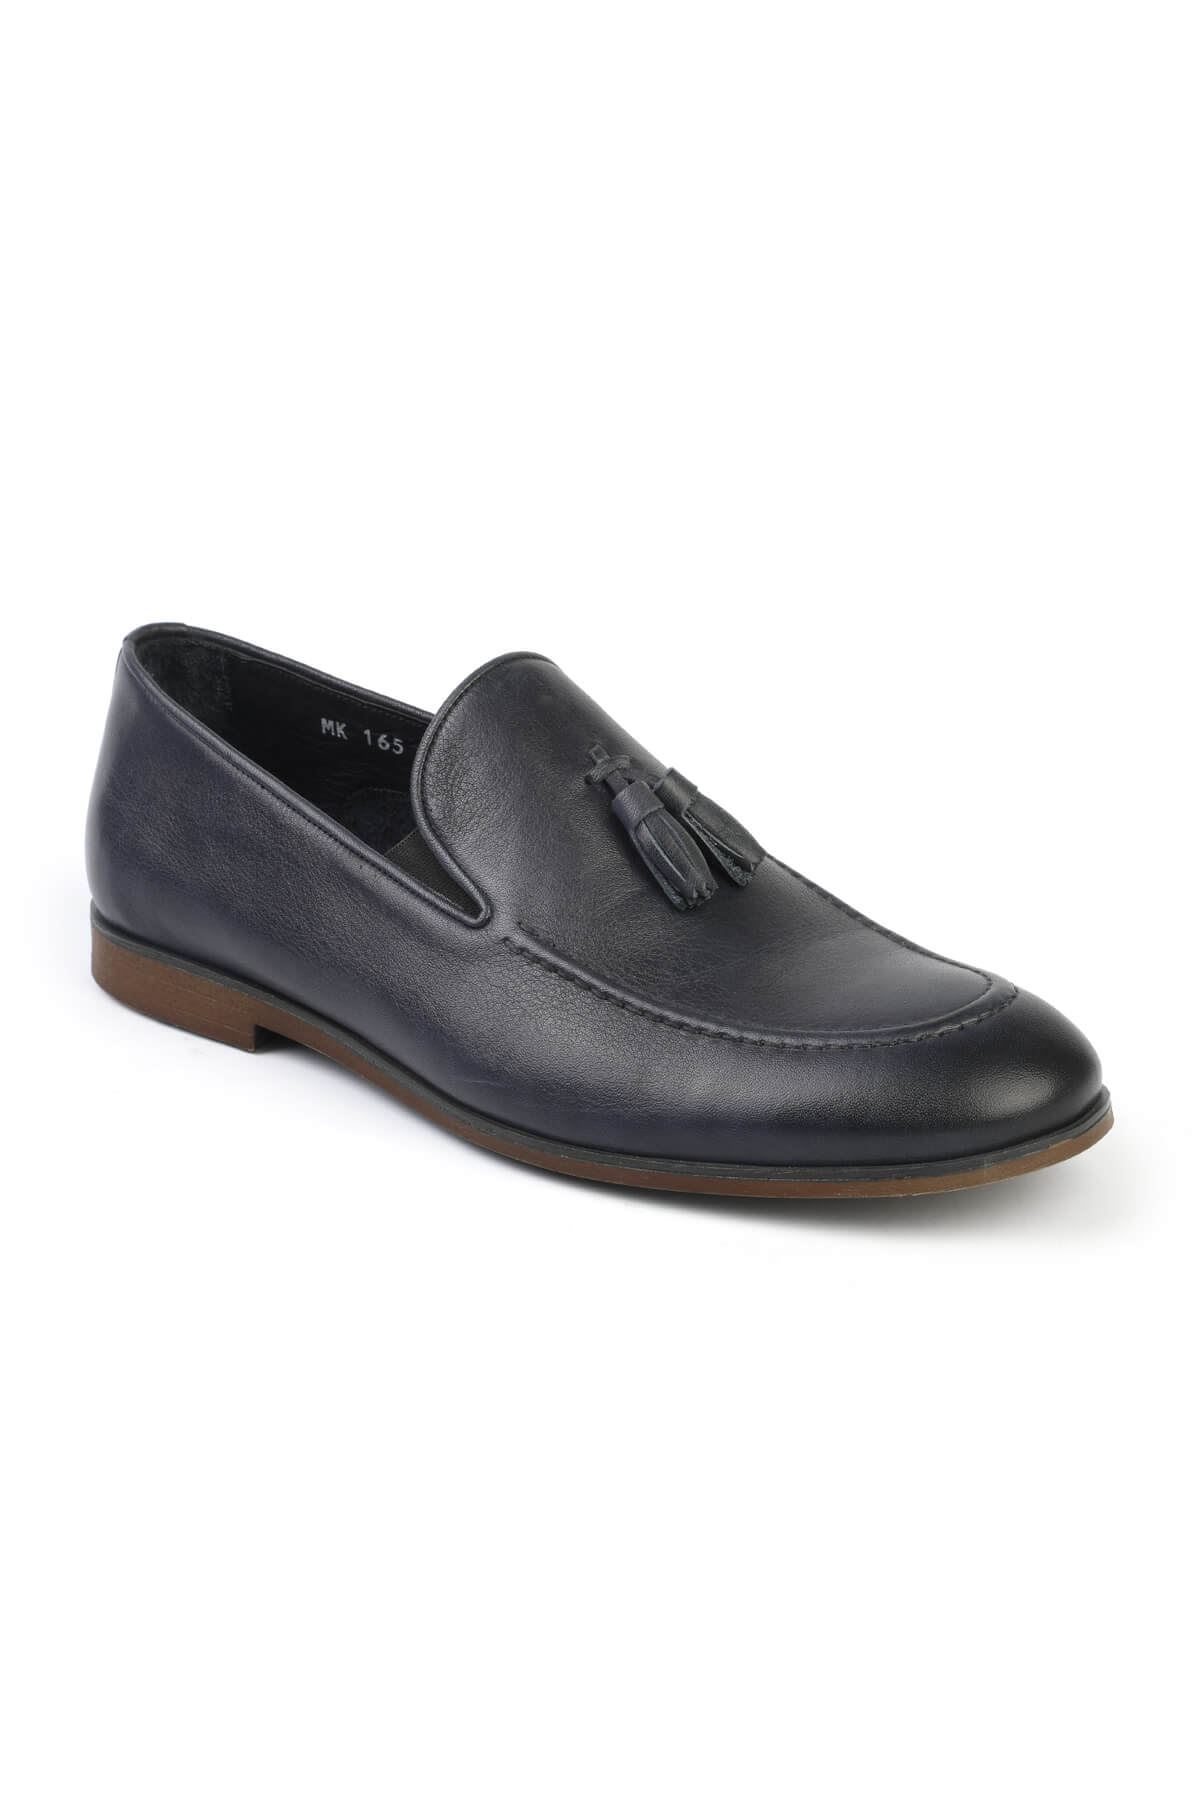 Libero C165 Navy Blue Loafer Shoes